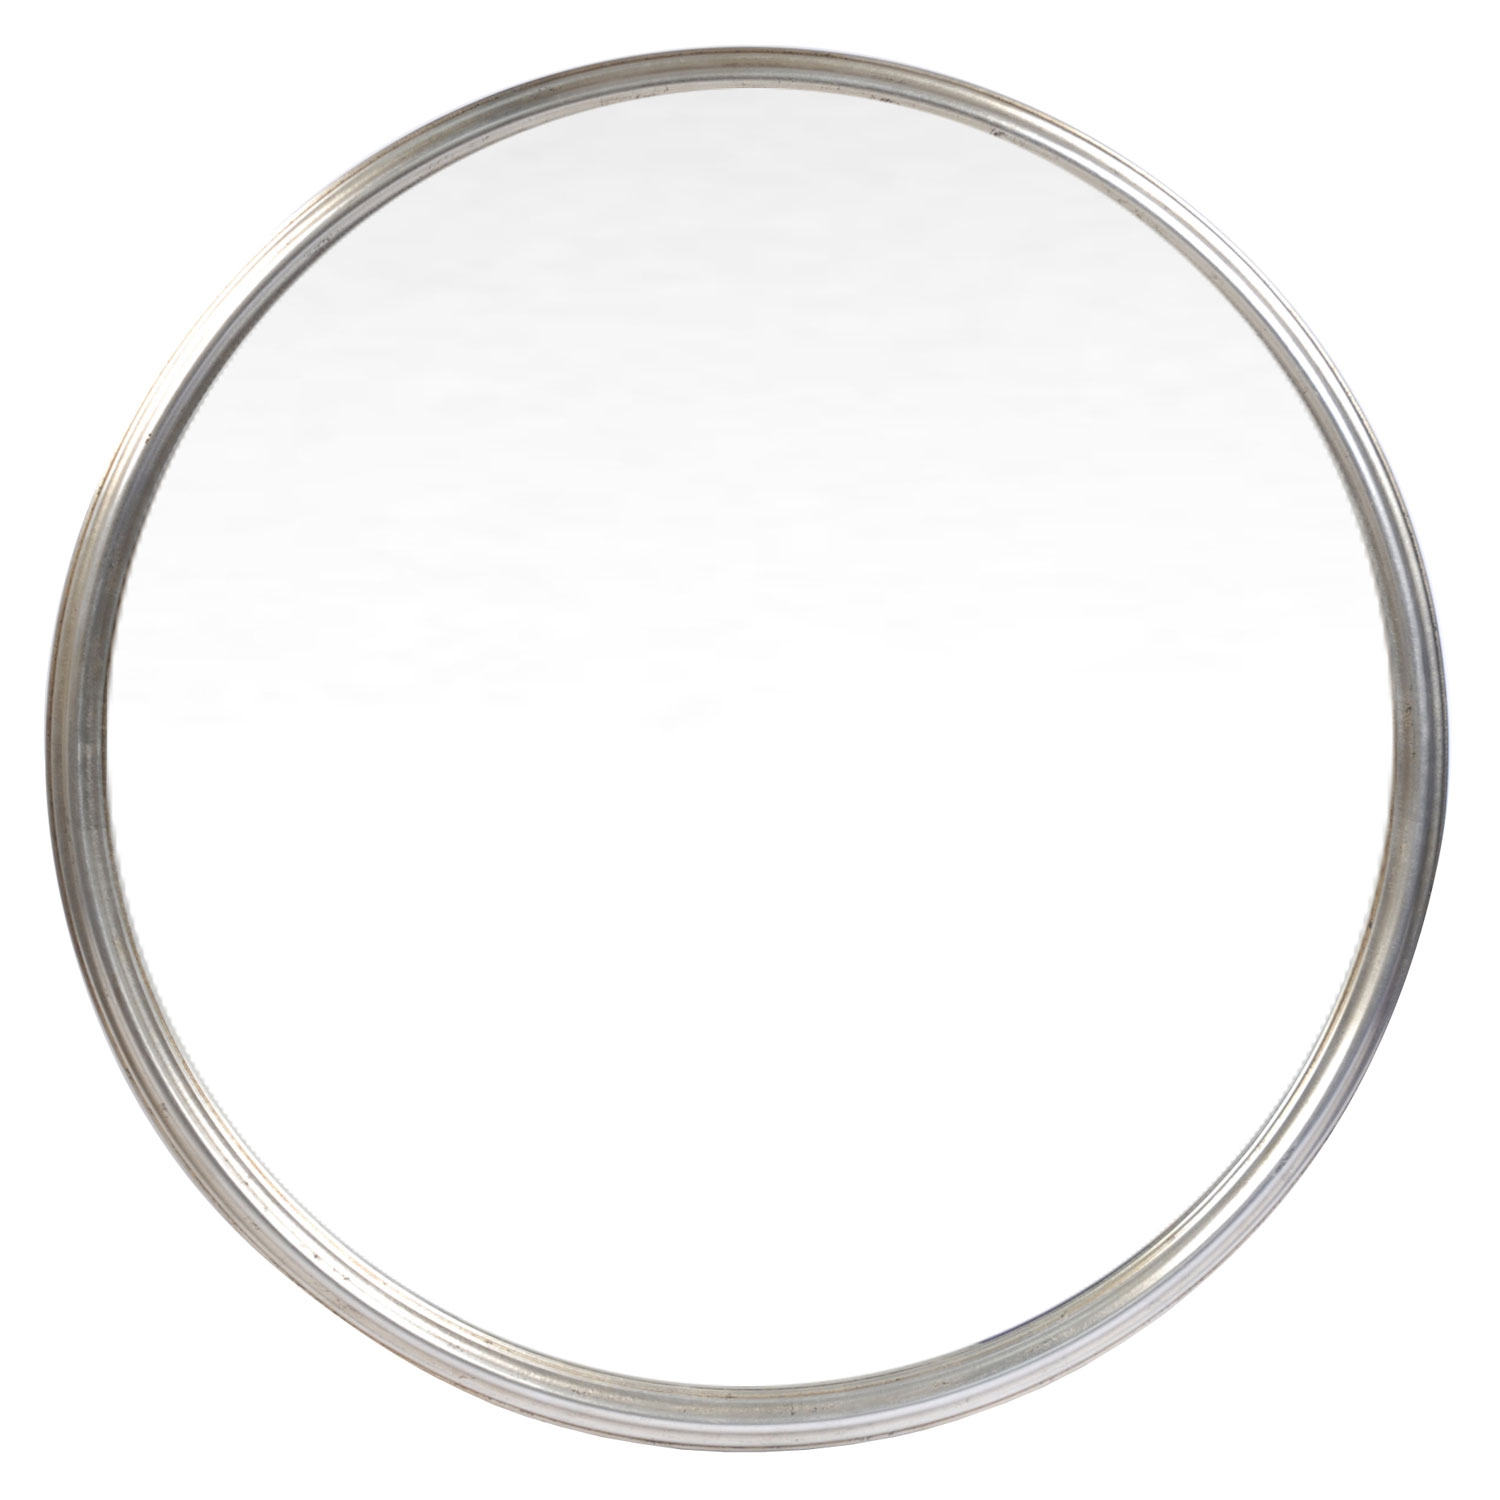 Classic Silver Round Mirror Round Mirrors Mirrors Home Decor For Round Silver Mirrors (Image 2 of 15)